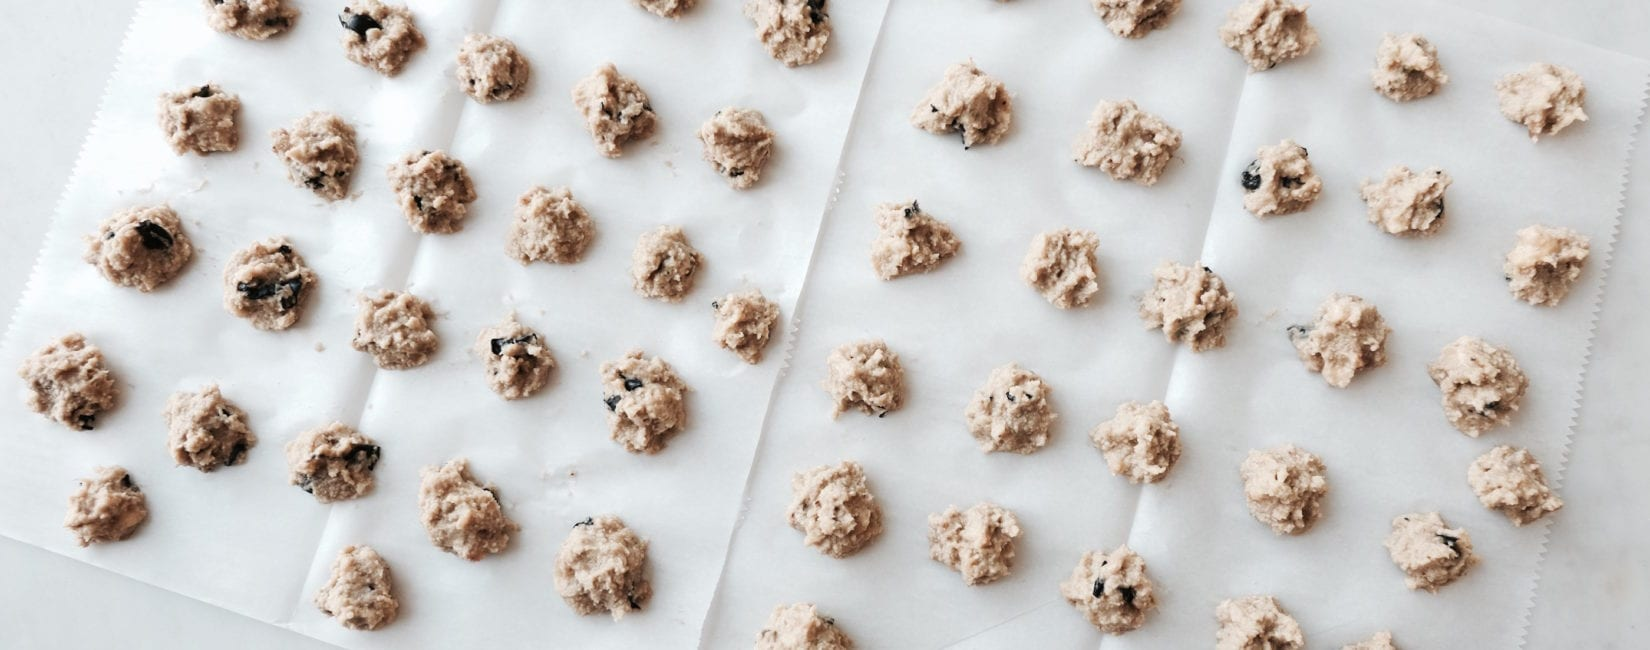 Grain Free PB+J Cookie Recipe + Our Fave Dog Treats